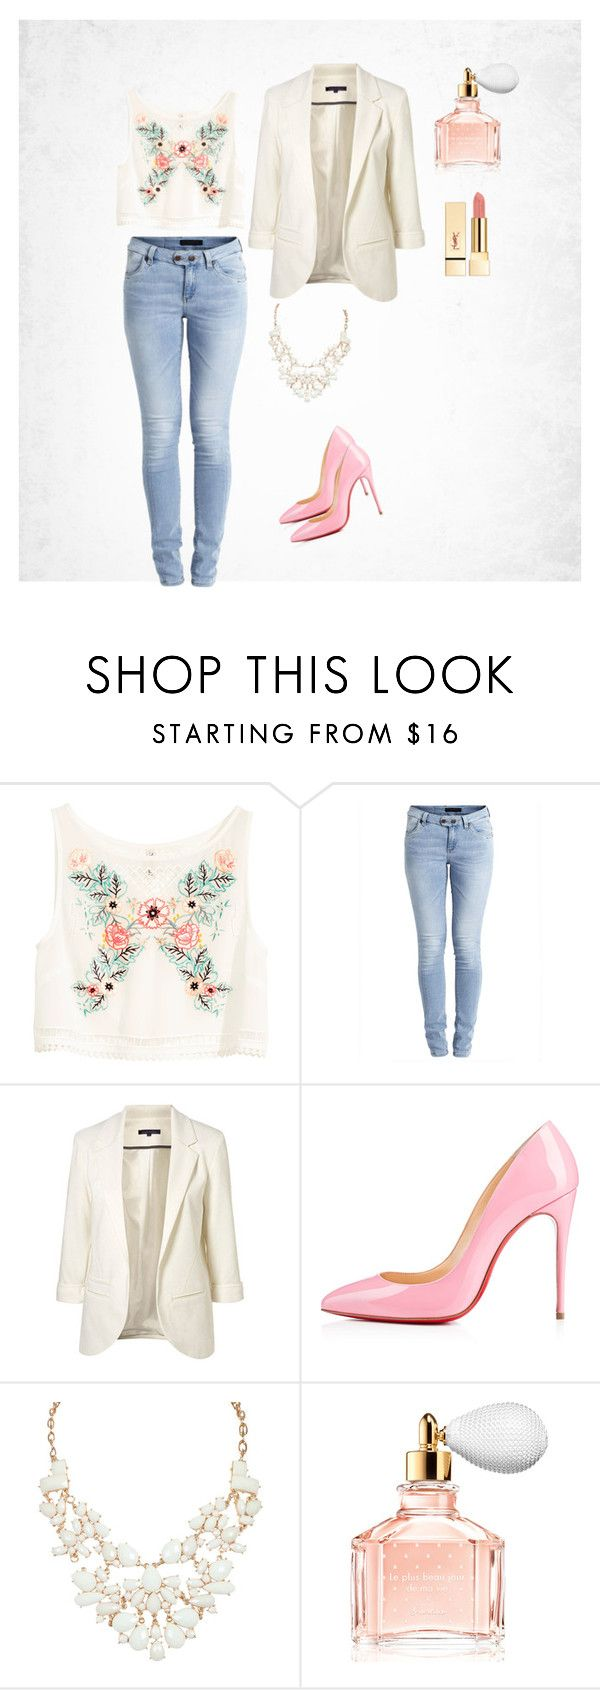 """Spring"" by amra-f ❤ liked on Polyvore featuring H&M, Object Collectors Item, Guerlain, Pink and Flowers"